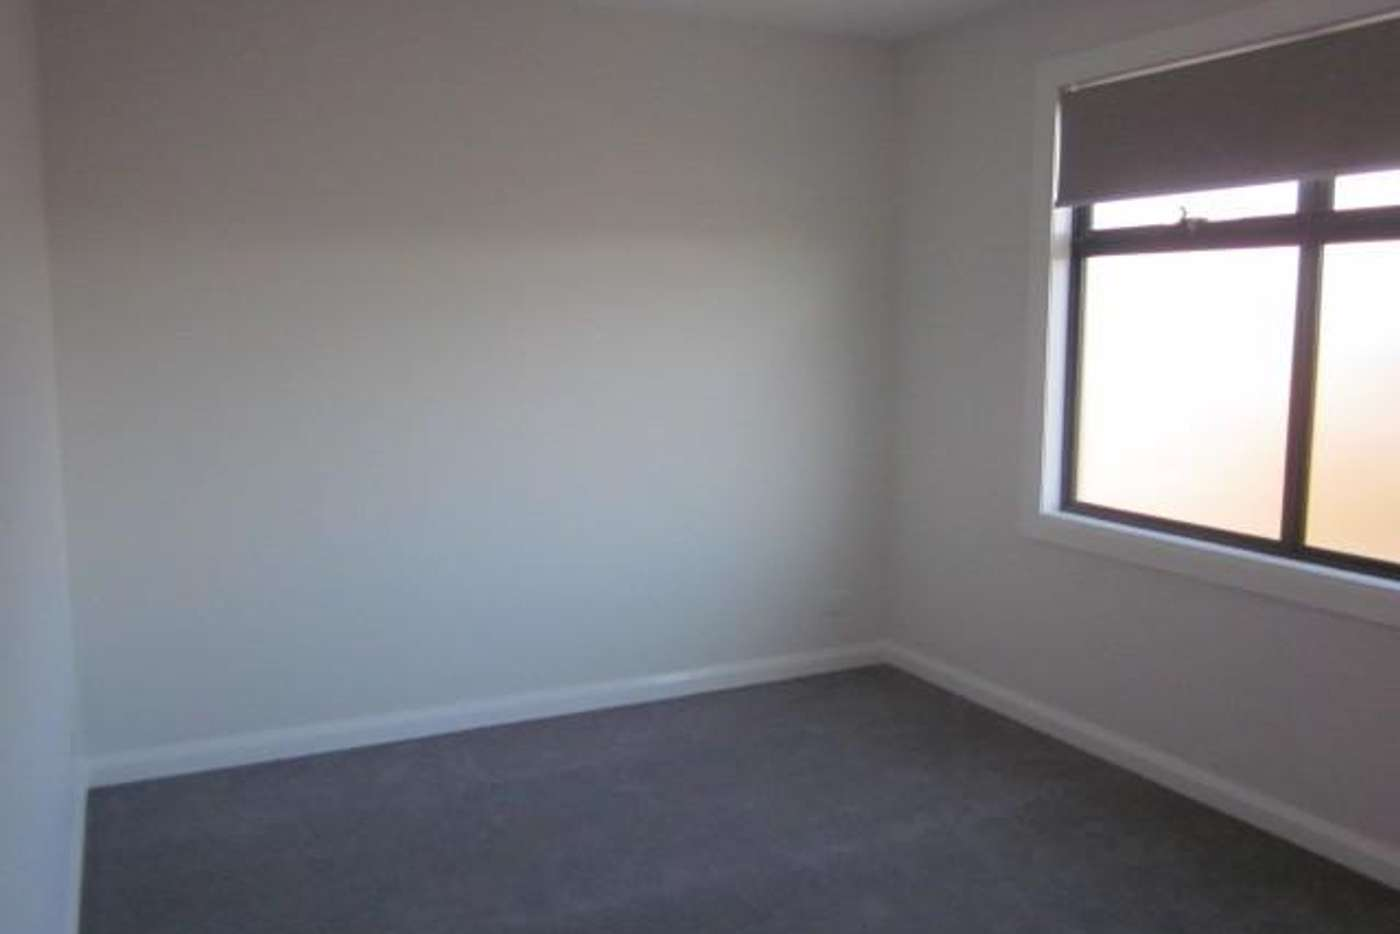 Seventh view of Homely townhouse listing, 3/18 York Street, Glenroy VIC 3046